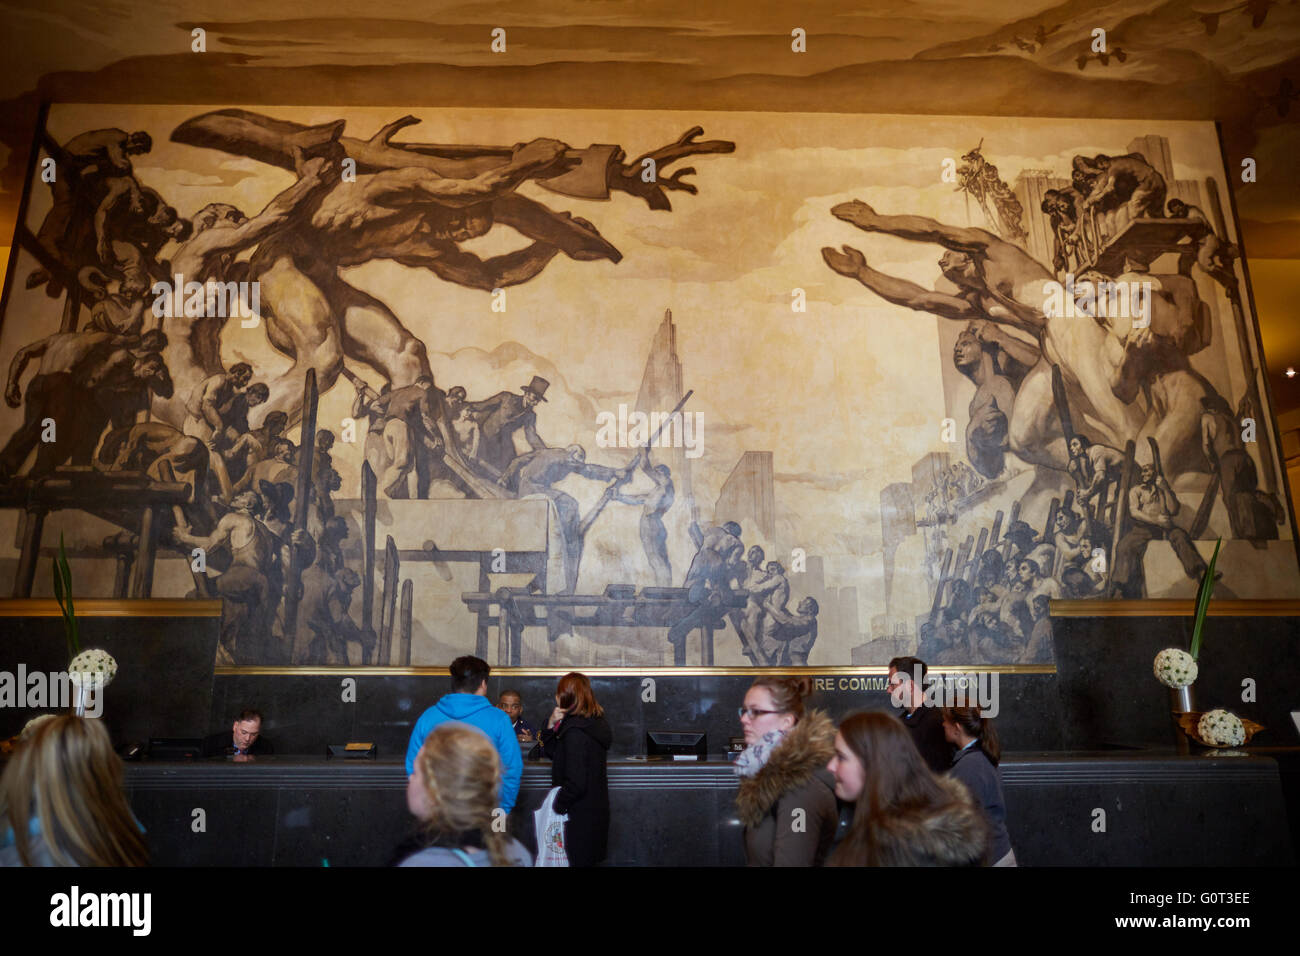 Design Ceiling Mural new york american progress back wall and time ceiling murals in the lobby of ge building by josep maria sert rockefe